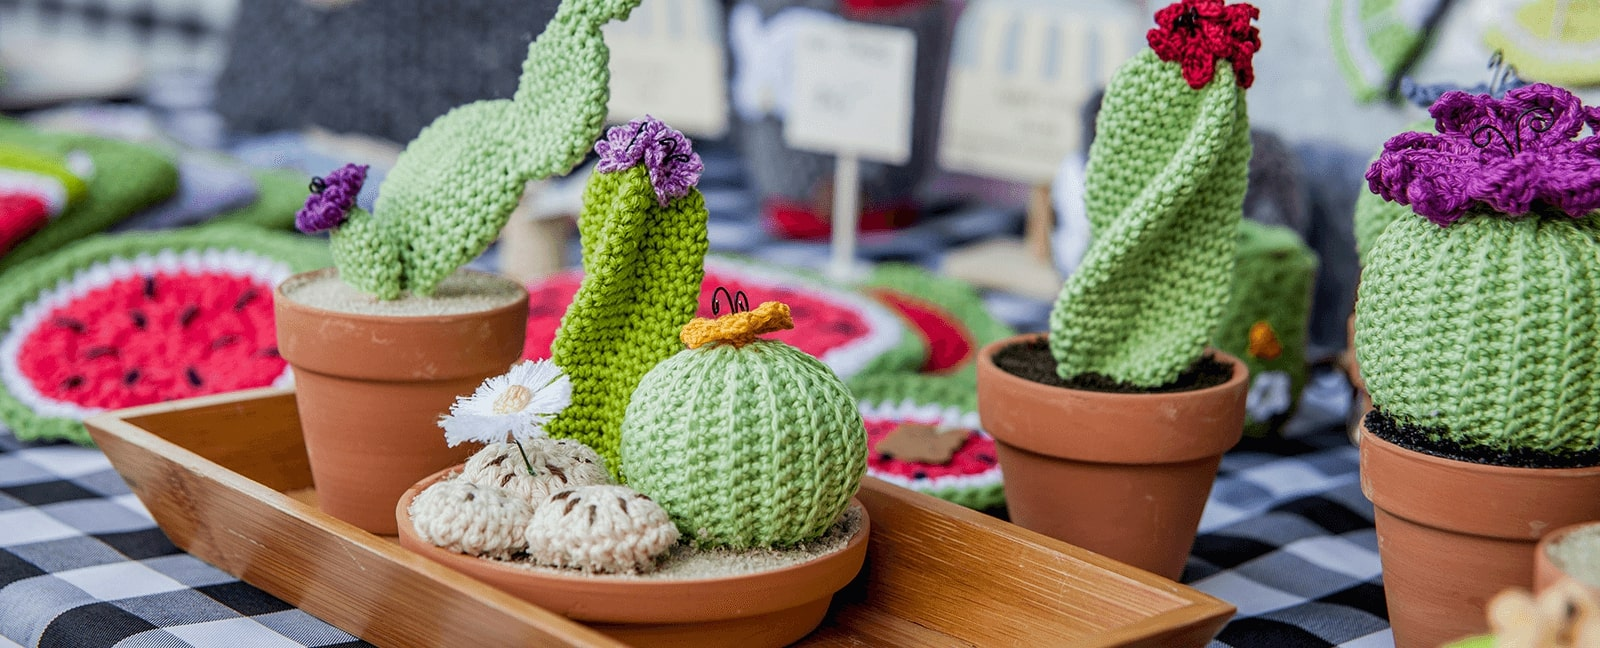 Handcrafted cacti and succulents made by an artisan vendor at the Kitchener Market.